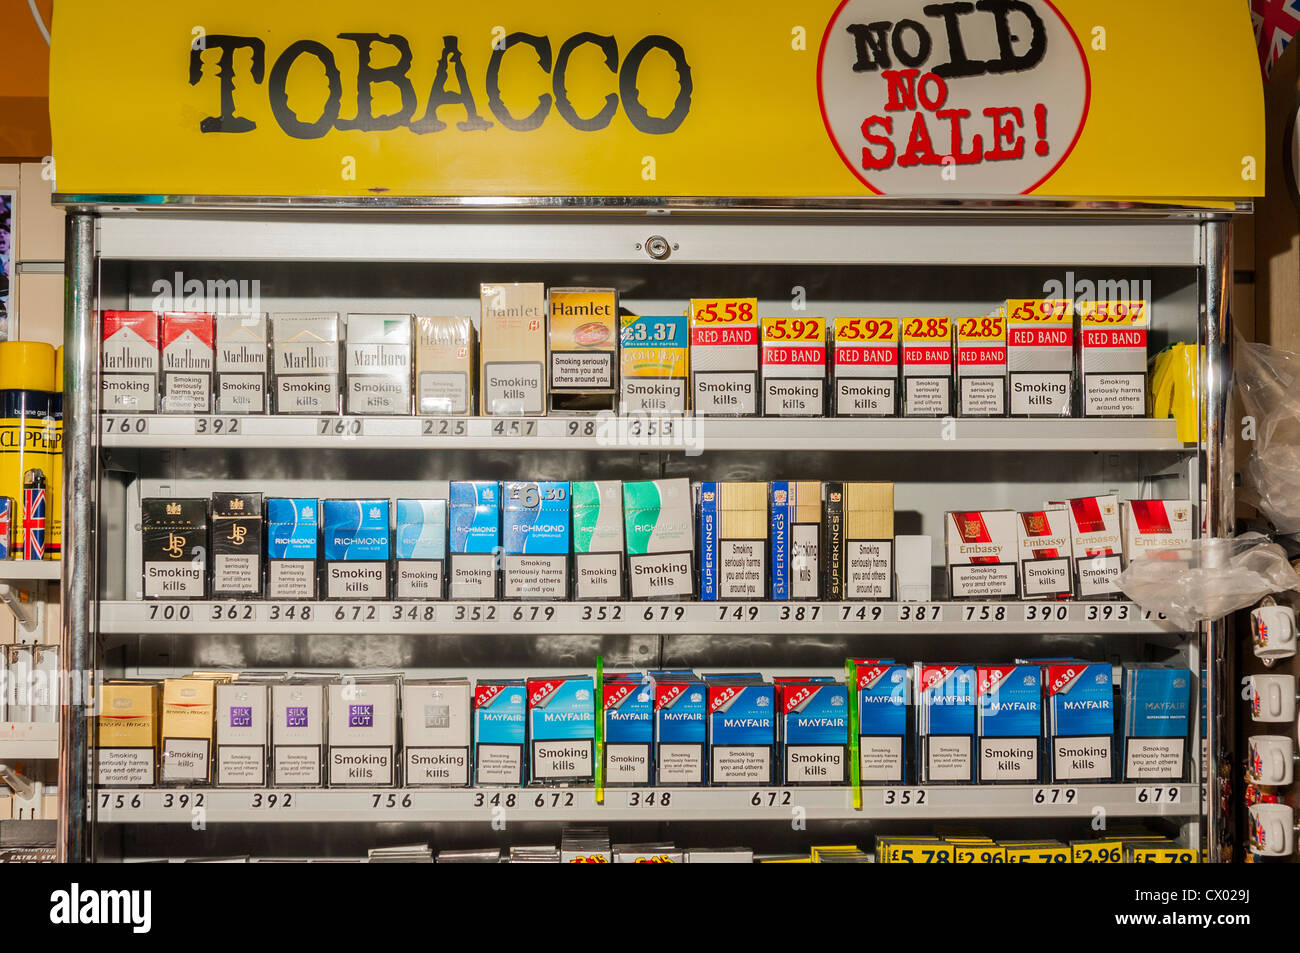 Duty free tobacco prices in Portugal